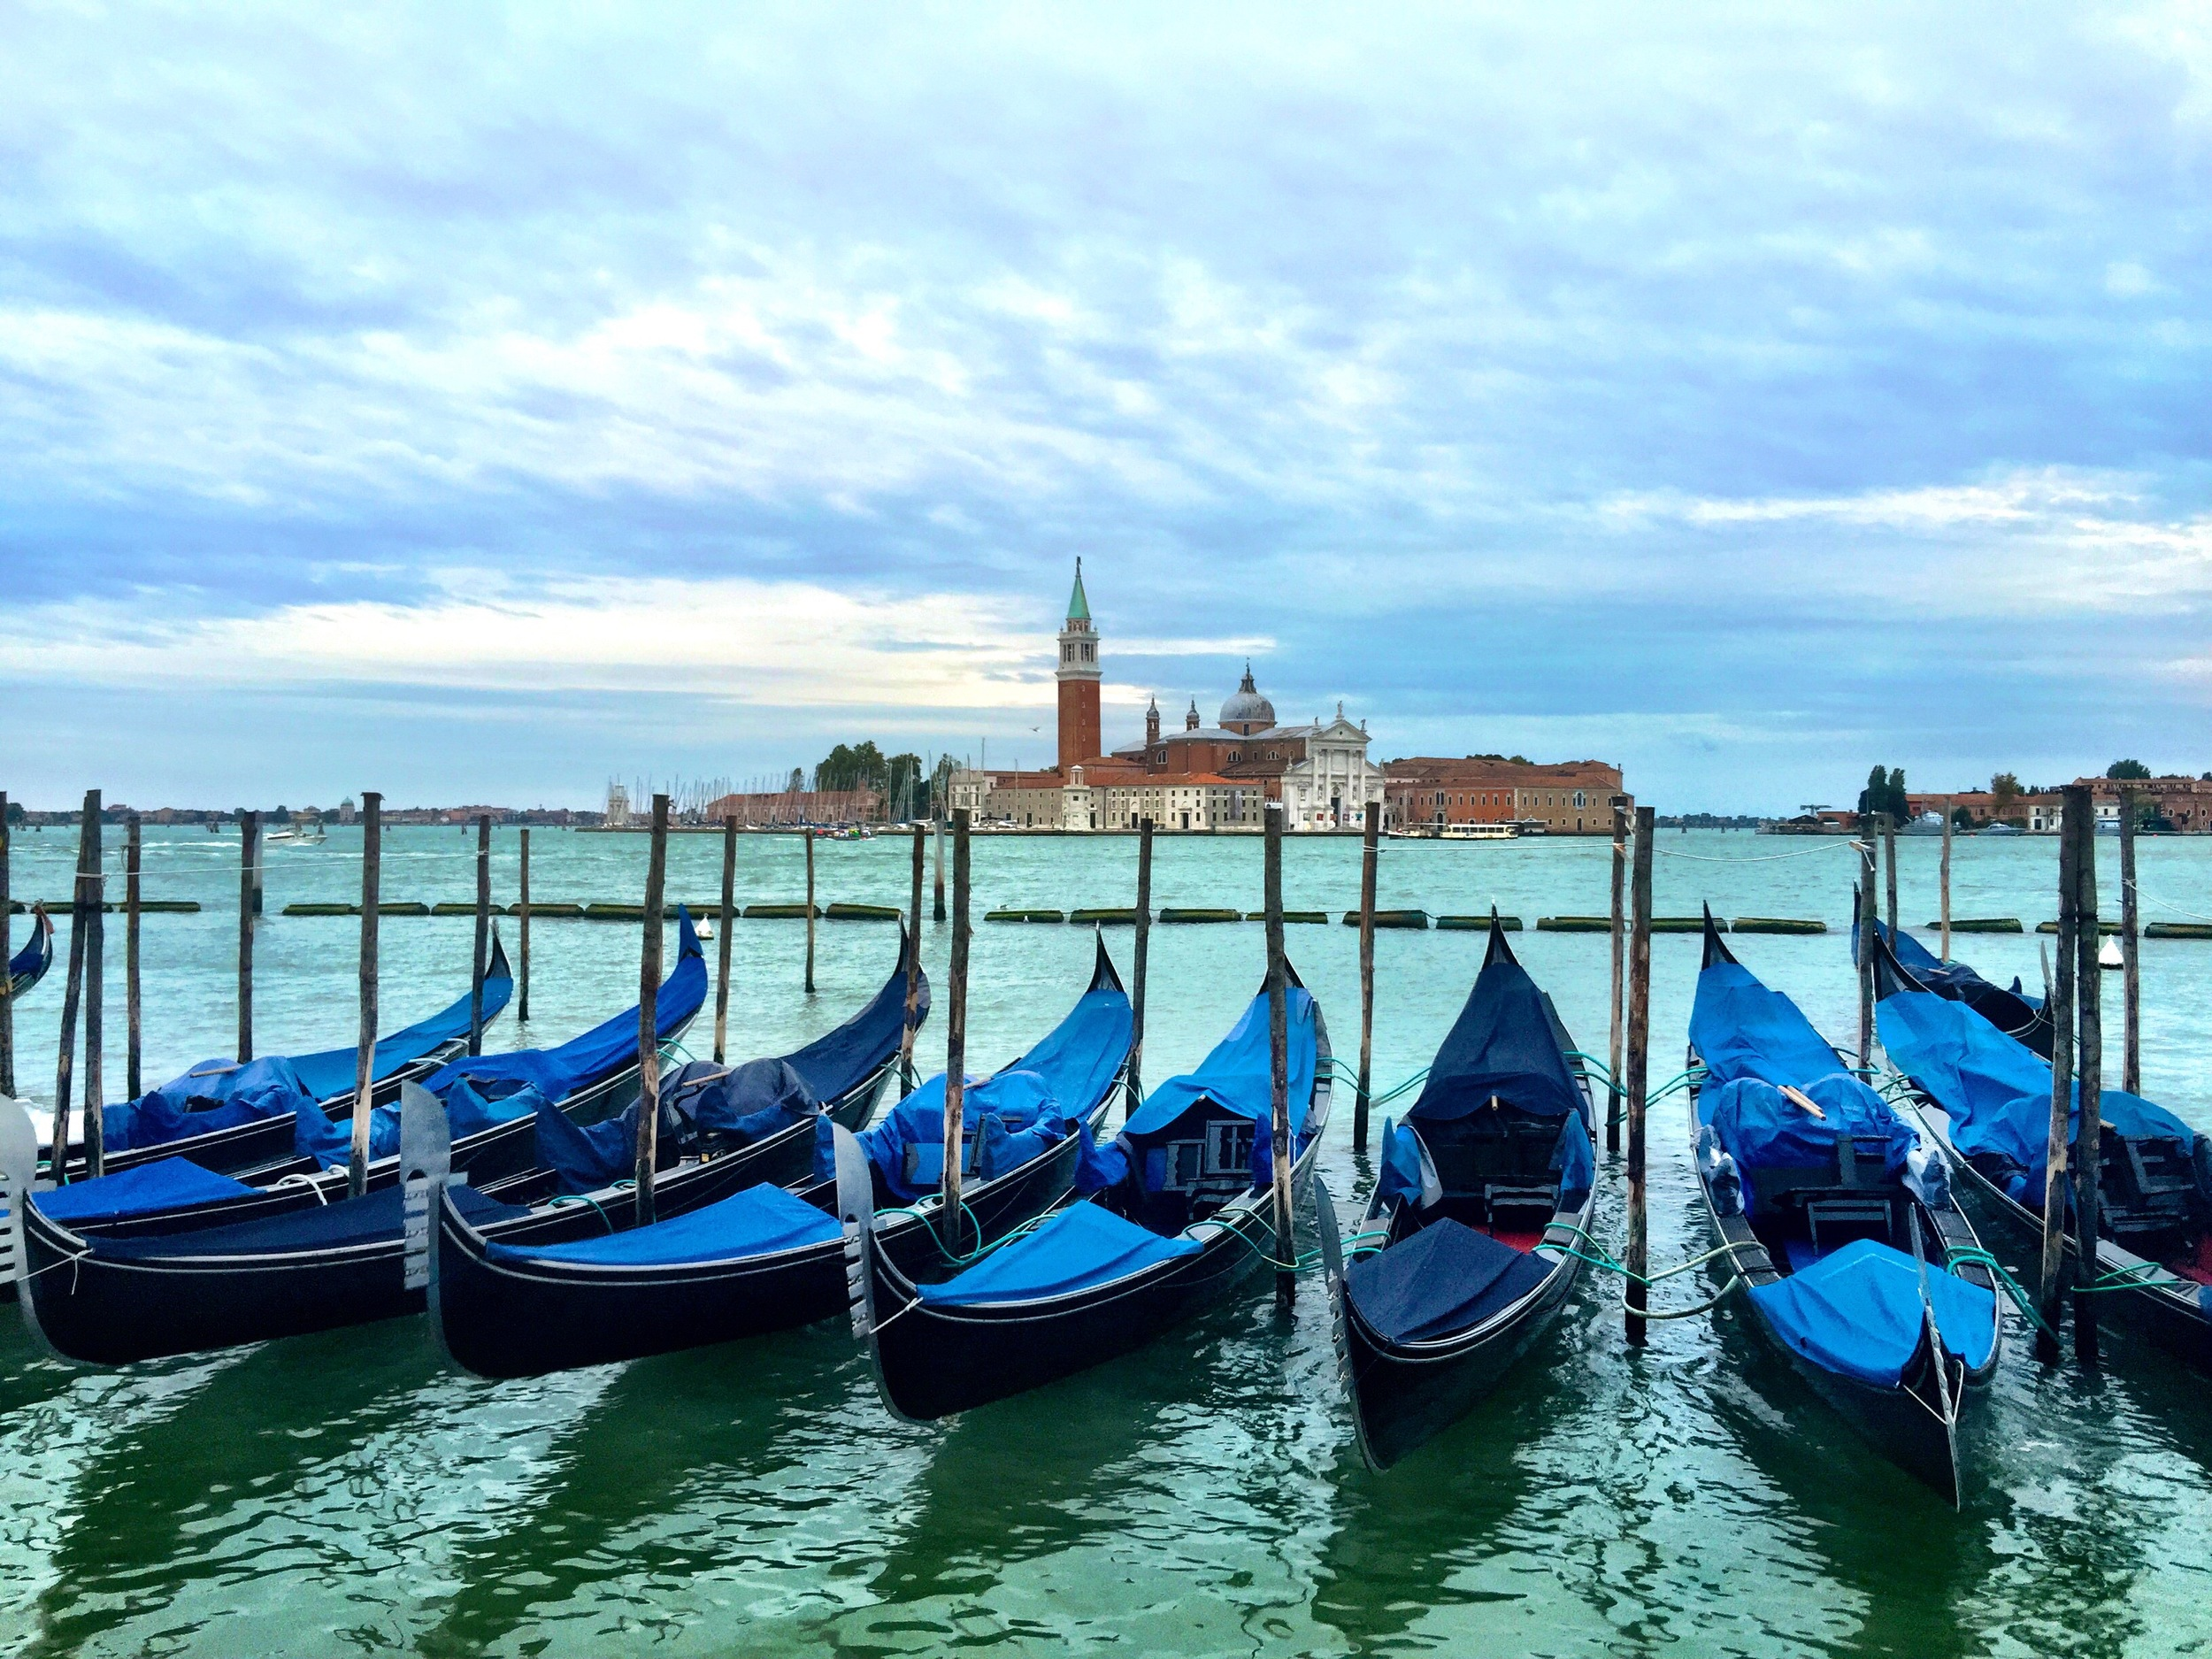 Join us in September 2017 for our 15th Candelaria Design Tour Italy finishing in Venice!